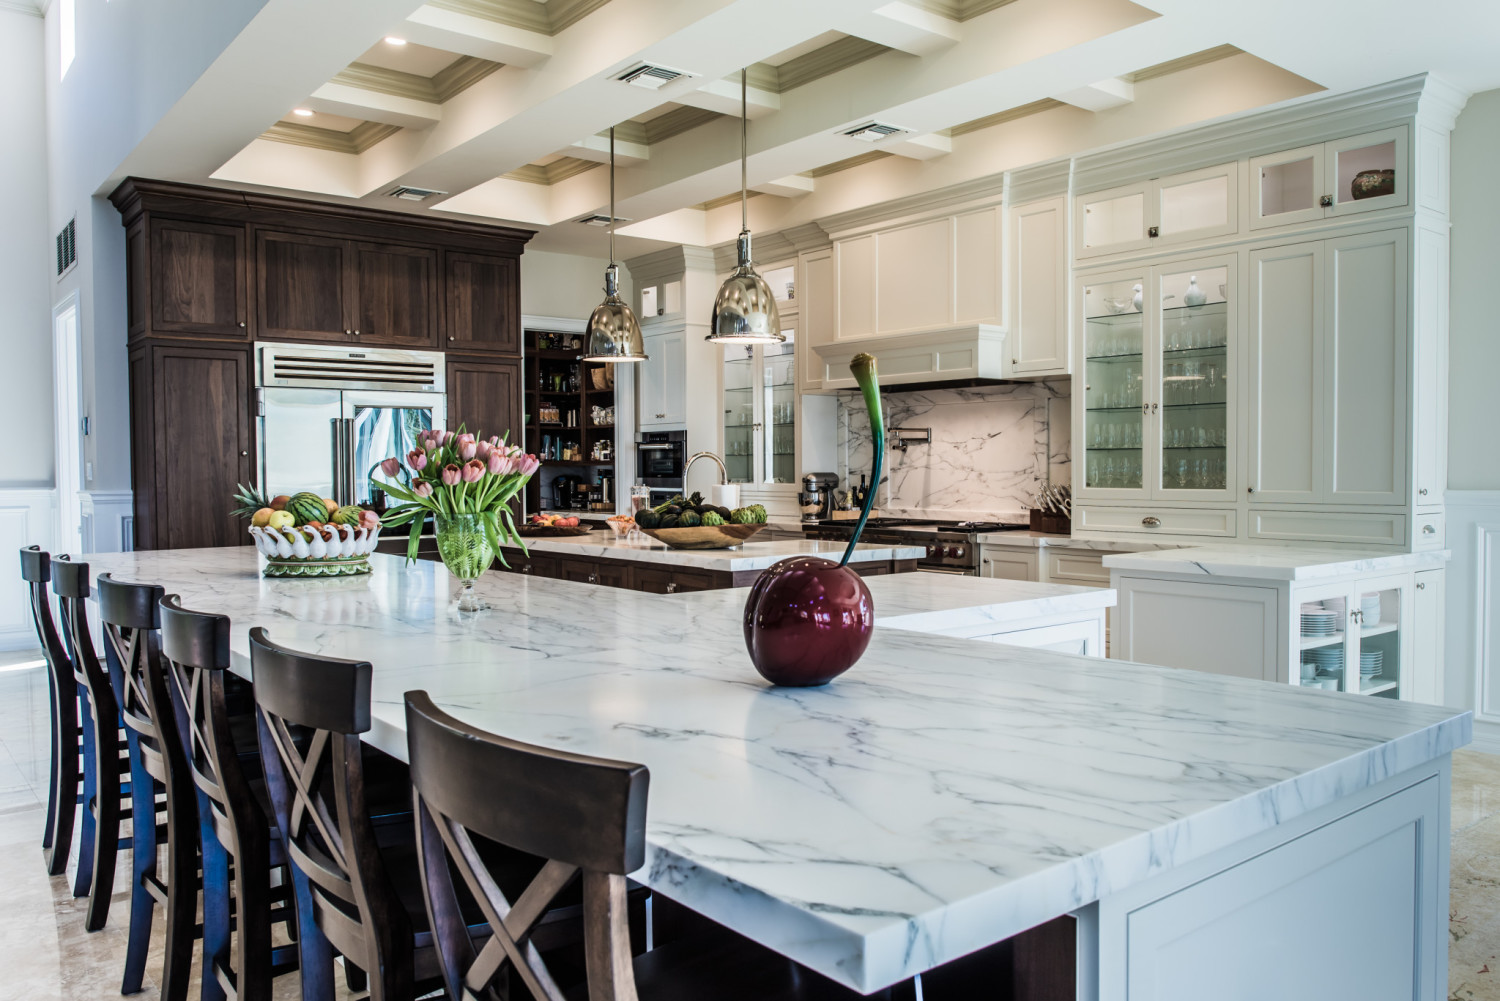 Frosty White Inset Cabinetry Walnut Refrigerator Wall Carrera Marble Countertops